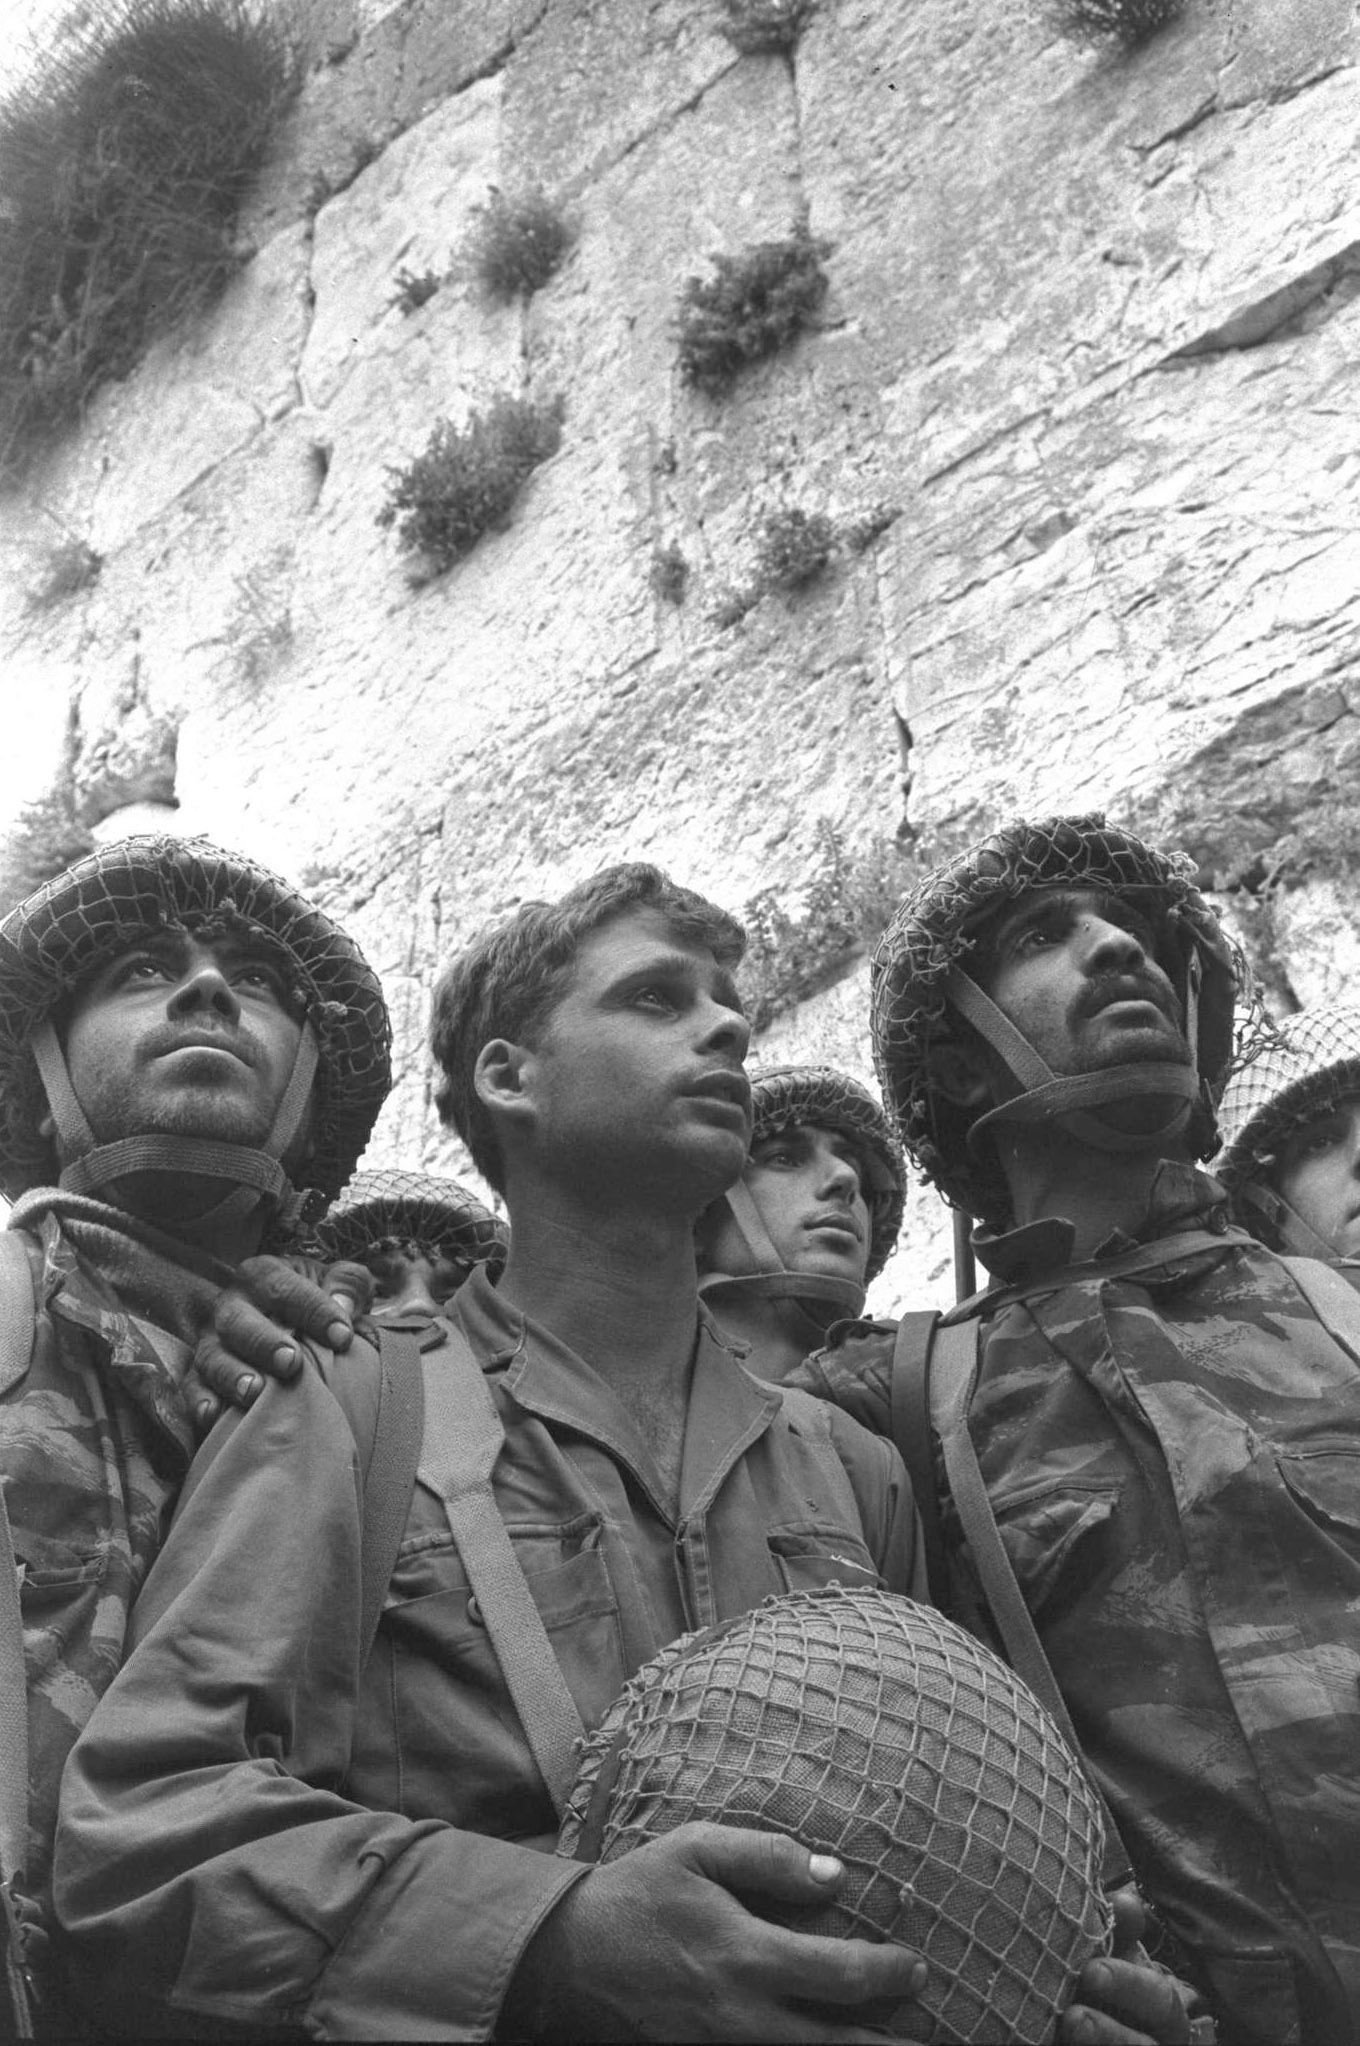 David Rubinger's famous photograph of soldiers at the Western Wall in 1967.